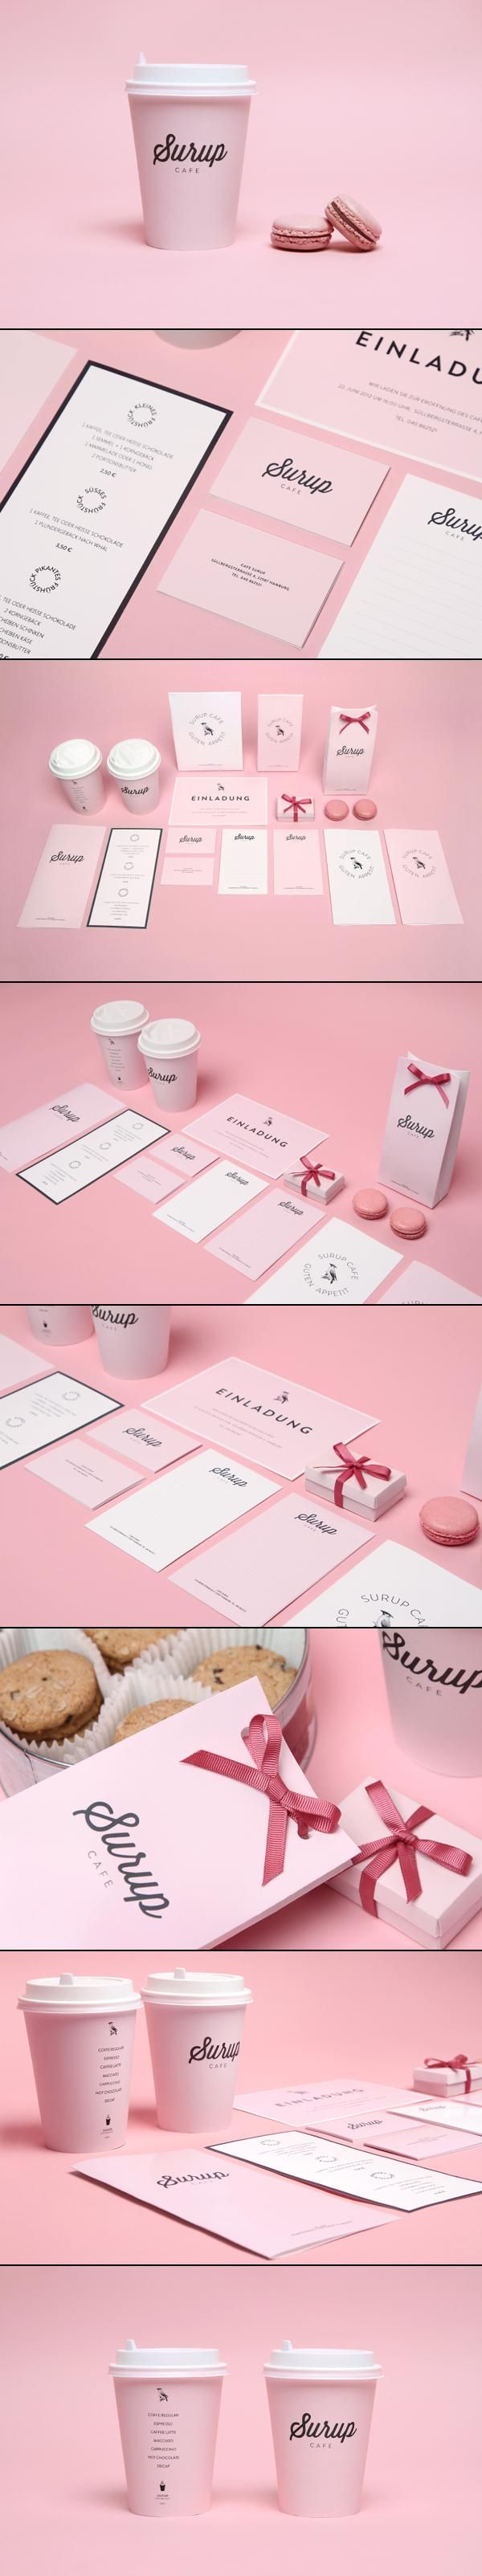 Surup Café // Feminine Pink Branding / Eye Candy // Vintage meets Modern Logo and Typography